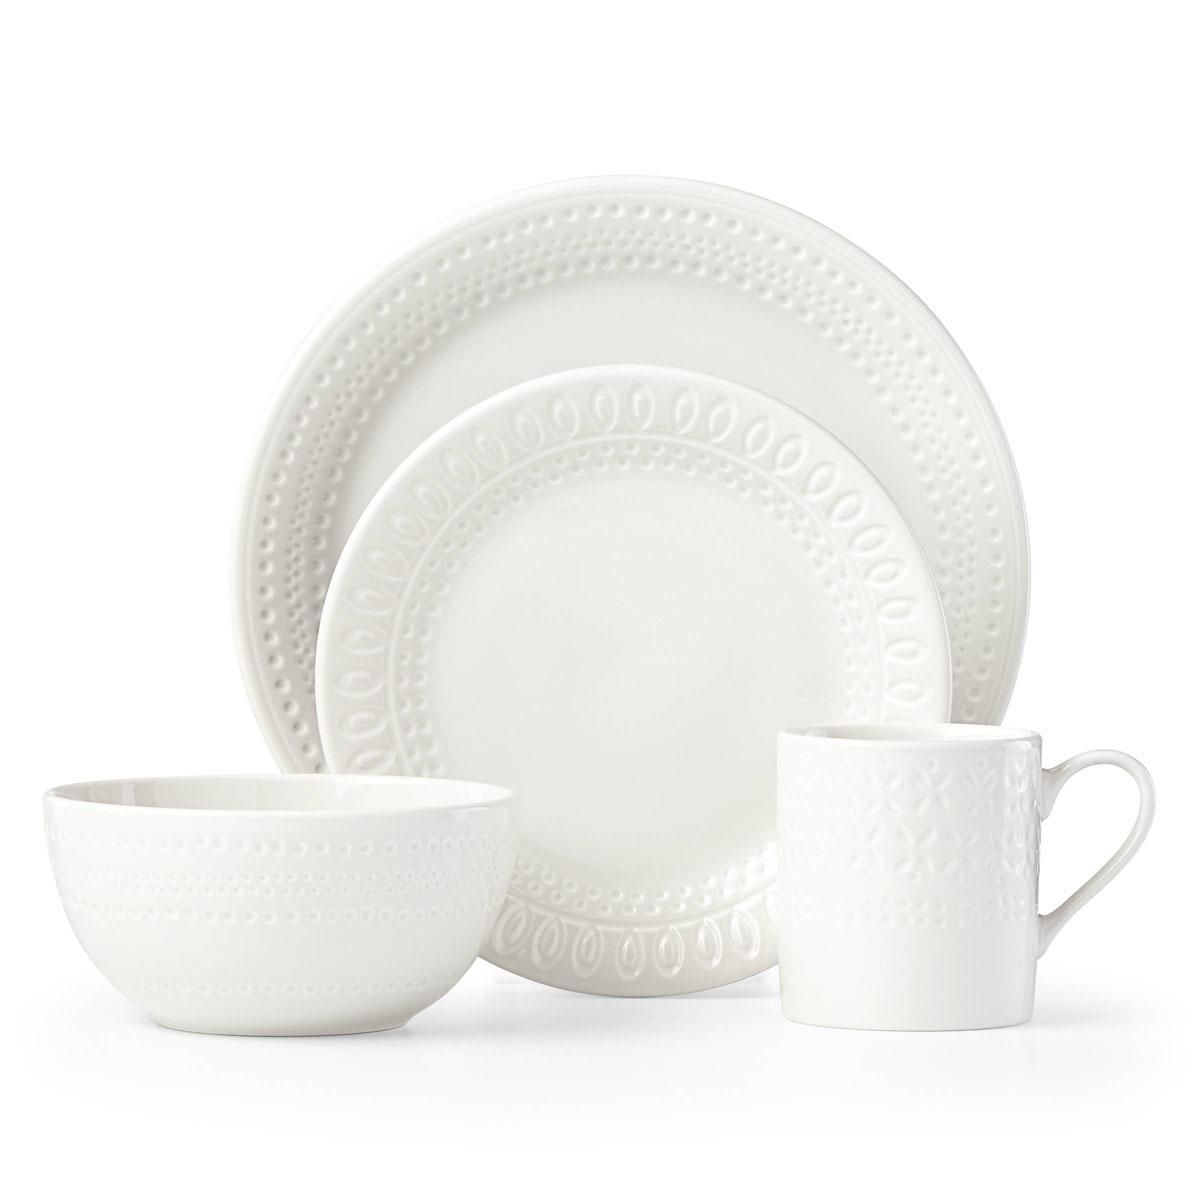 kate spade new york Lenox Stoneware Willow Drive Cream 4pc Place Setting